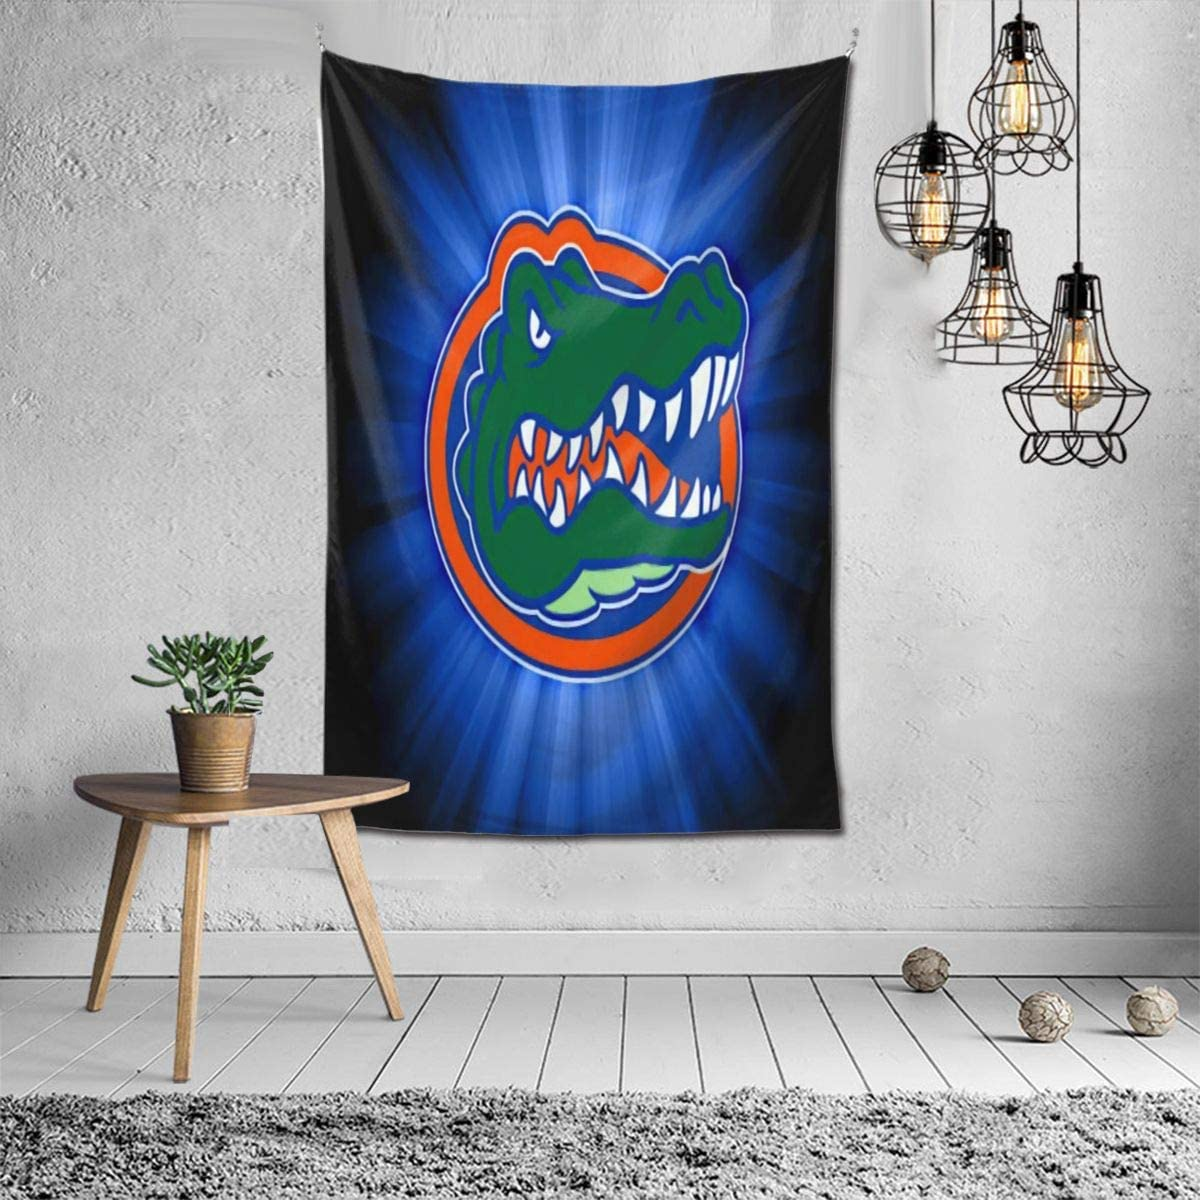 Fremont Die NCAA Florida Gators Tapestry Wall Hanging, Tapestry Art Decoration Closet Bed Living Room Bedroom Dormitory Bedroom Interior Home Decoration Tapestry 60 40inch